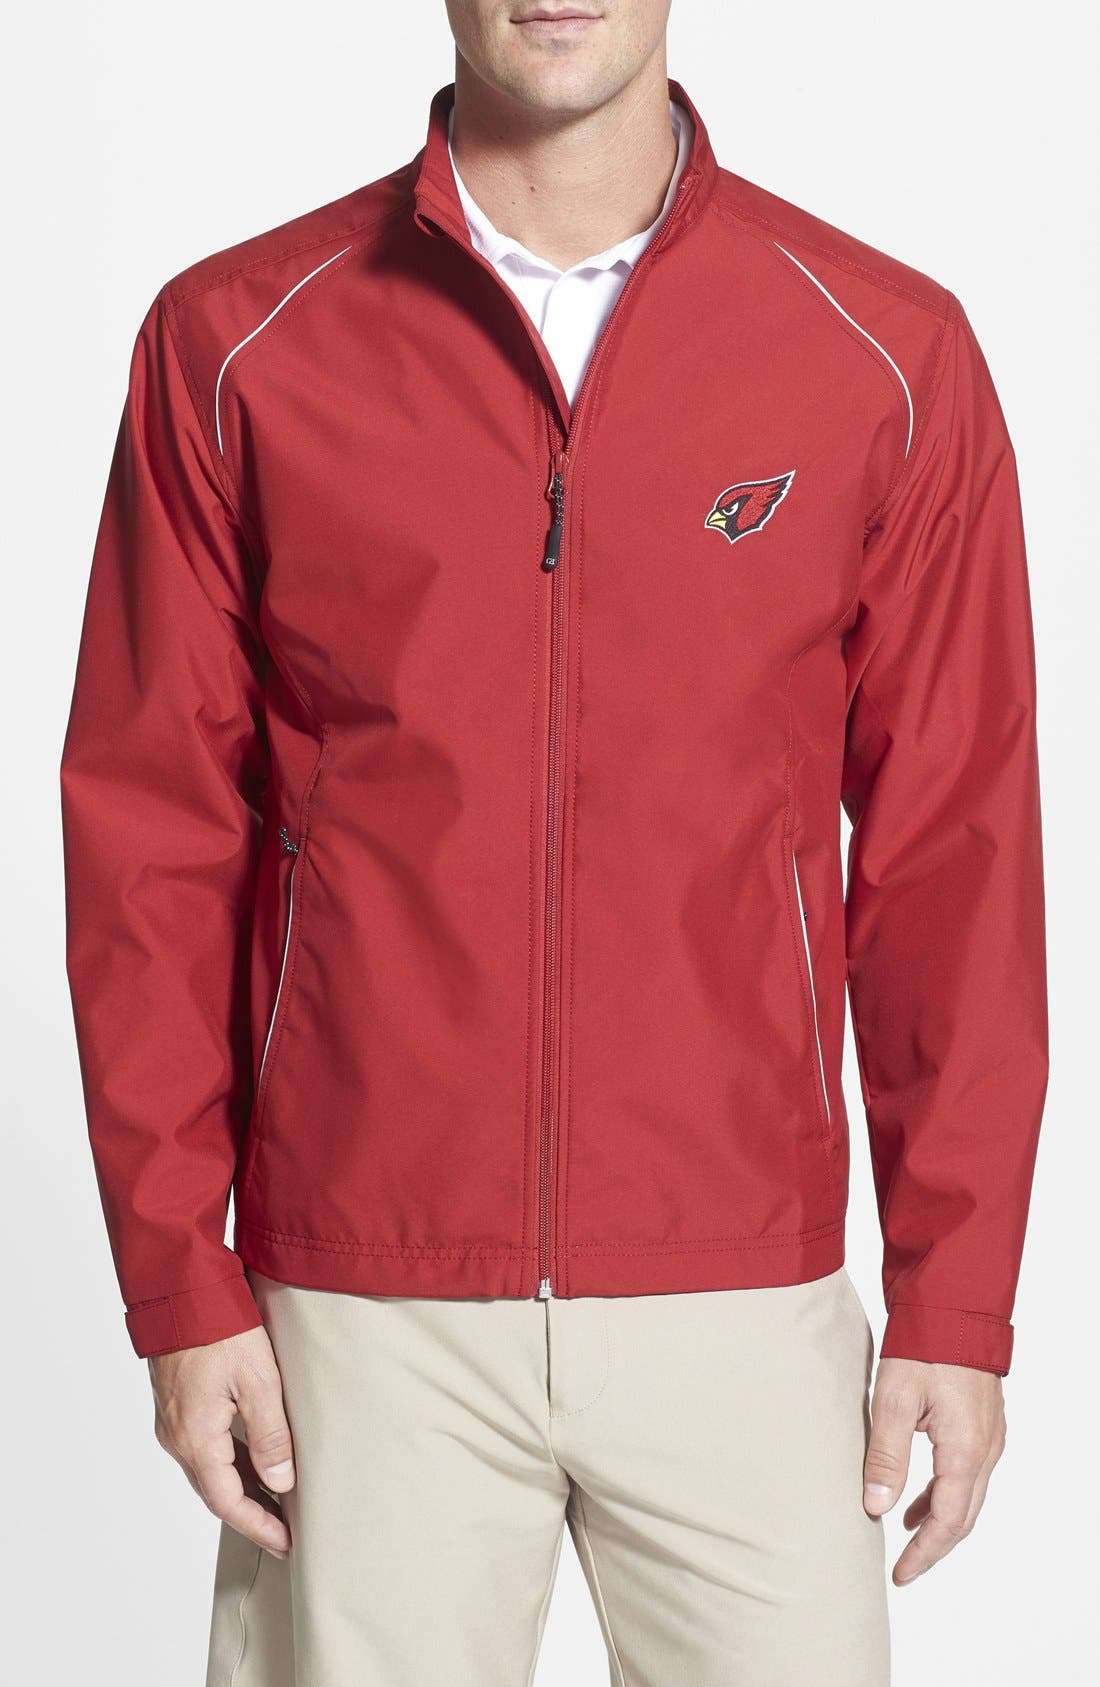 Cutter & Buck Arizona Cardinals - Beacon WeatherTec Wind & Water Resistant Jacket